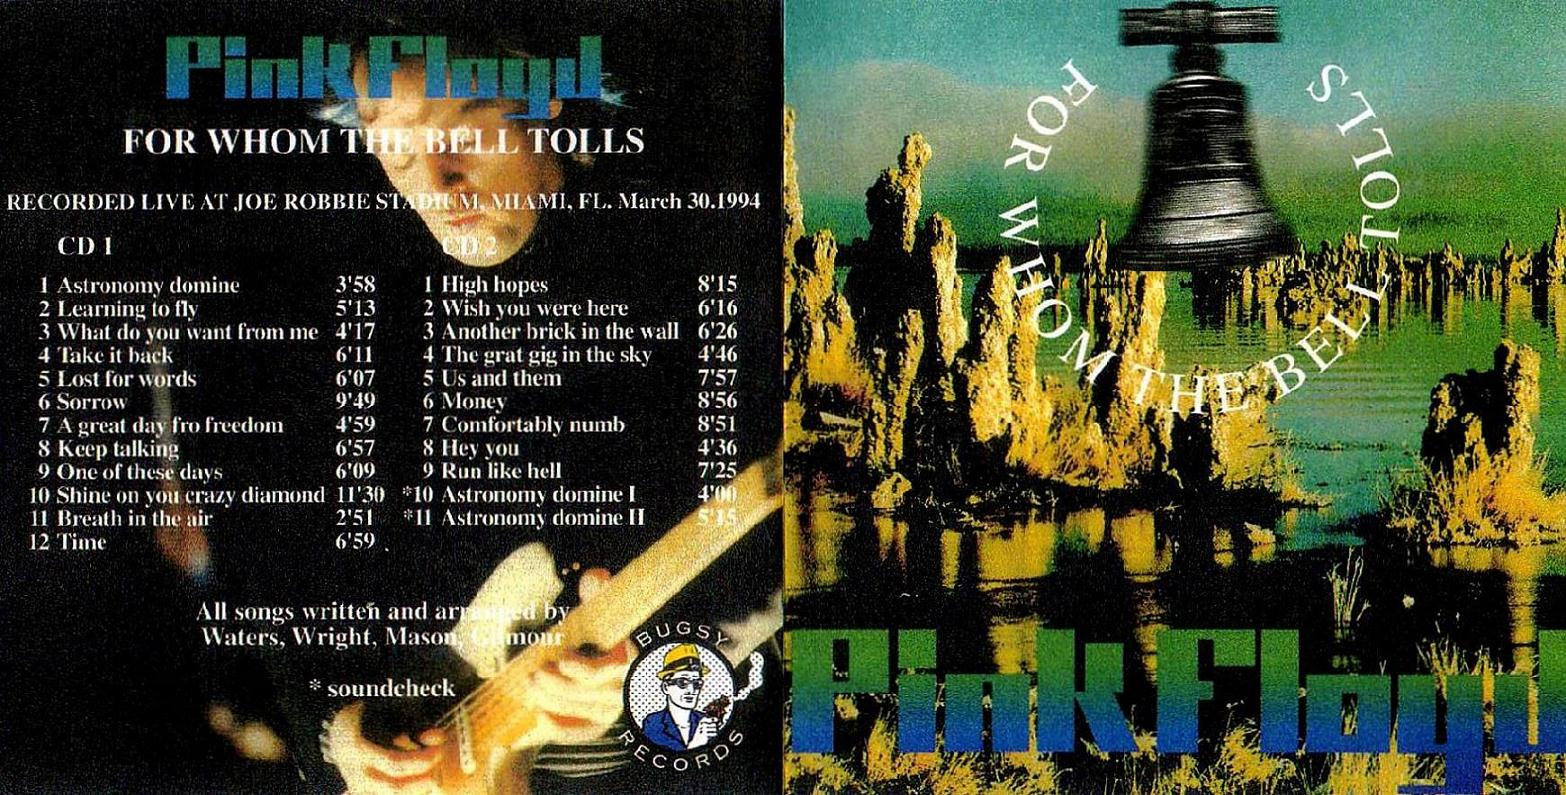 1994-04-30-For_Whom_the_bell_tolls-front